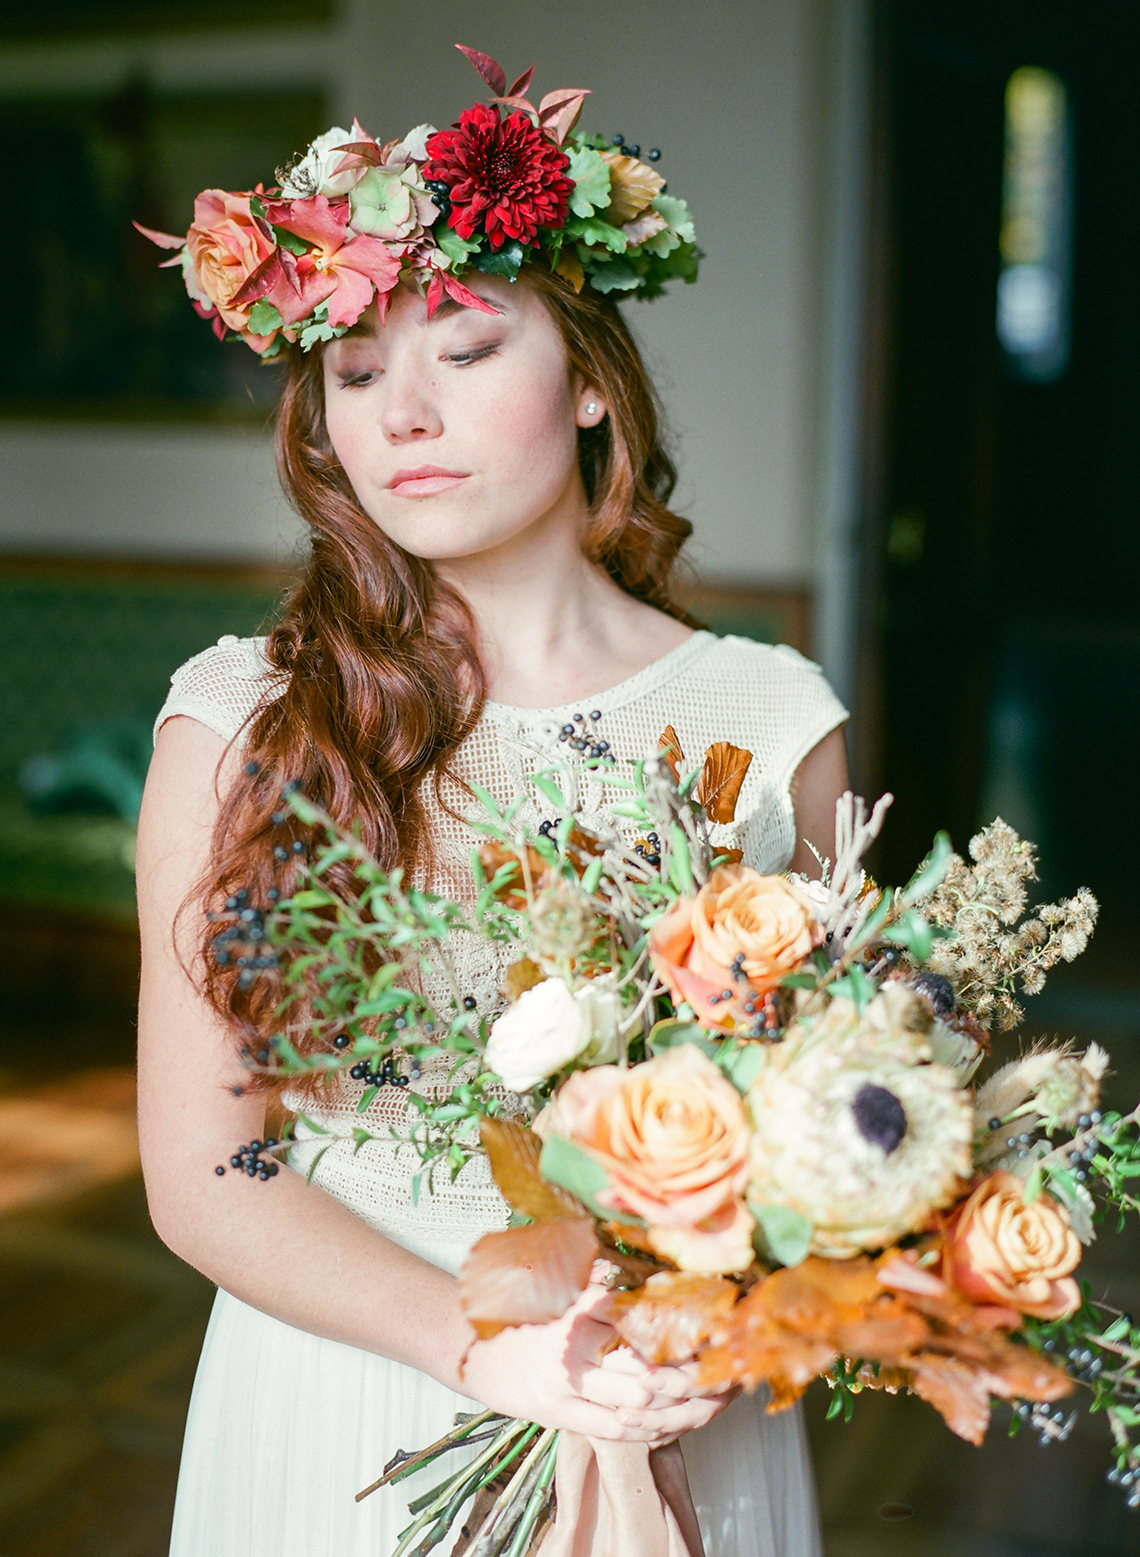 Rustic Vintage Bridal Inspiration in Tuscany Perfect for Fall Weddings – Antonis Prodromou – Villa Di Maiano 19